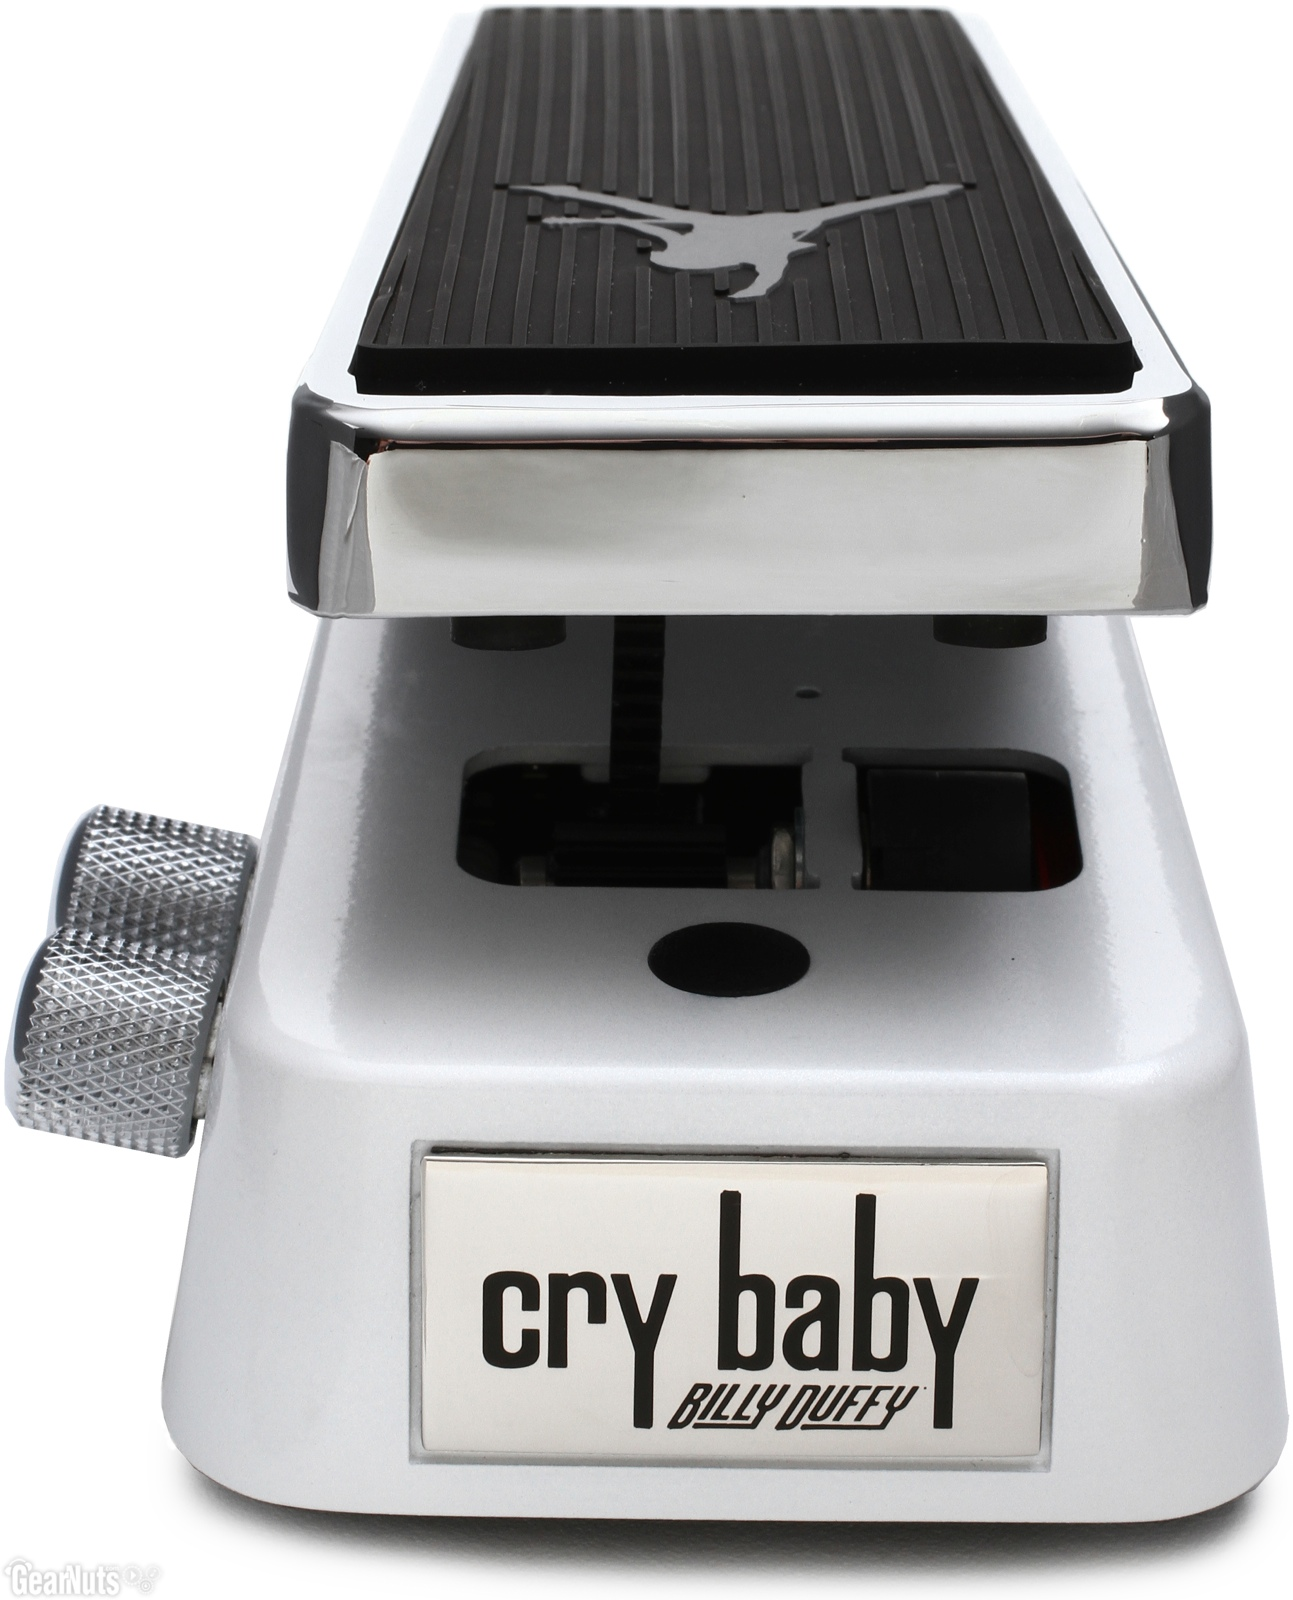 Dunlop Billy Duffy Signature Cry Baby Wah video: Dunlop Limited ...